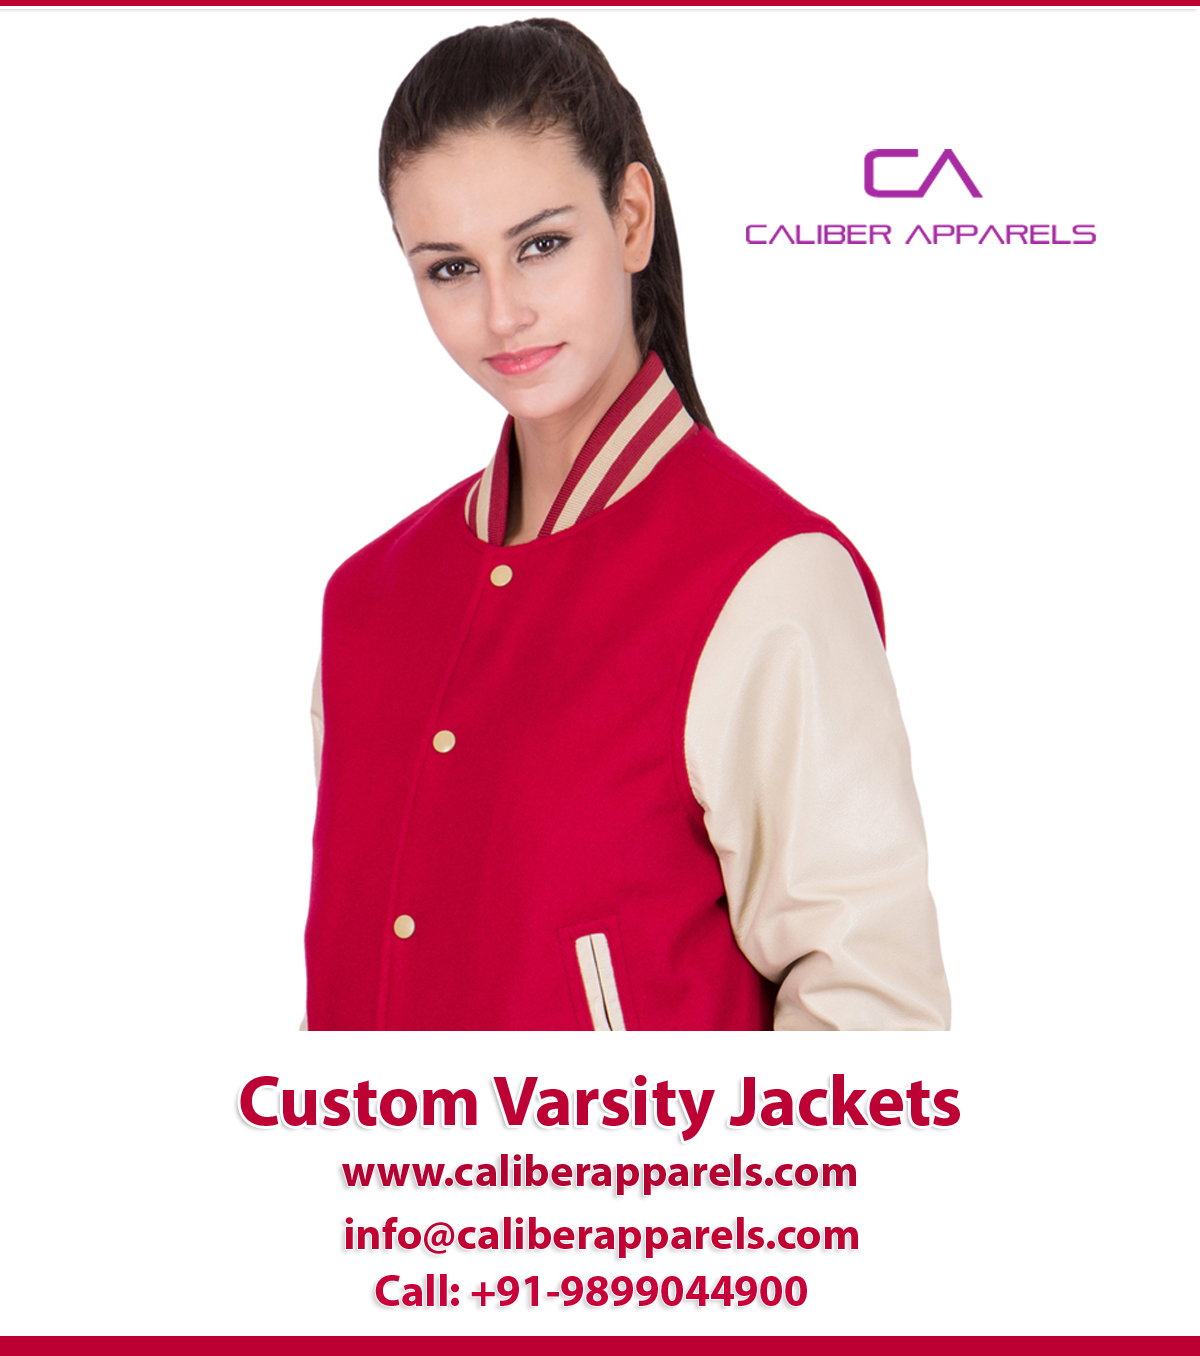 Get Your Favorite online Custom Varsity Jacket from Caliber Apparels at your budget.